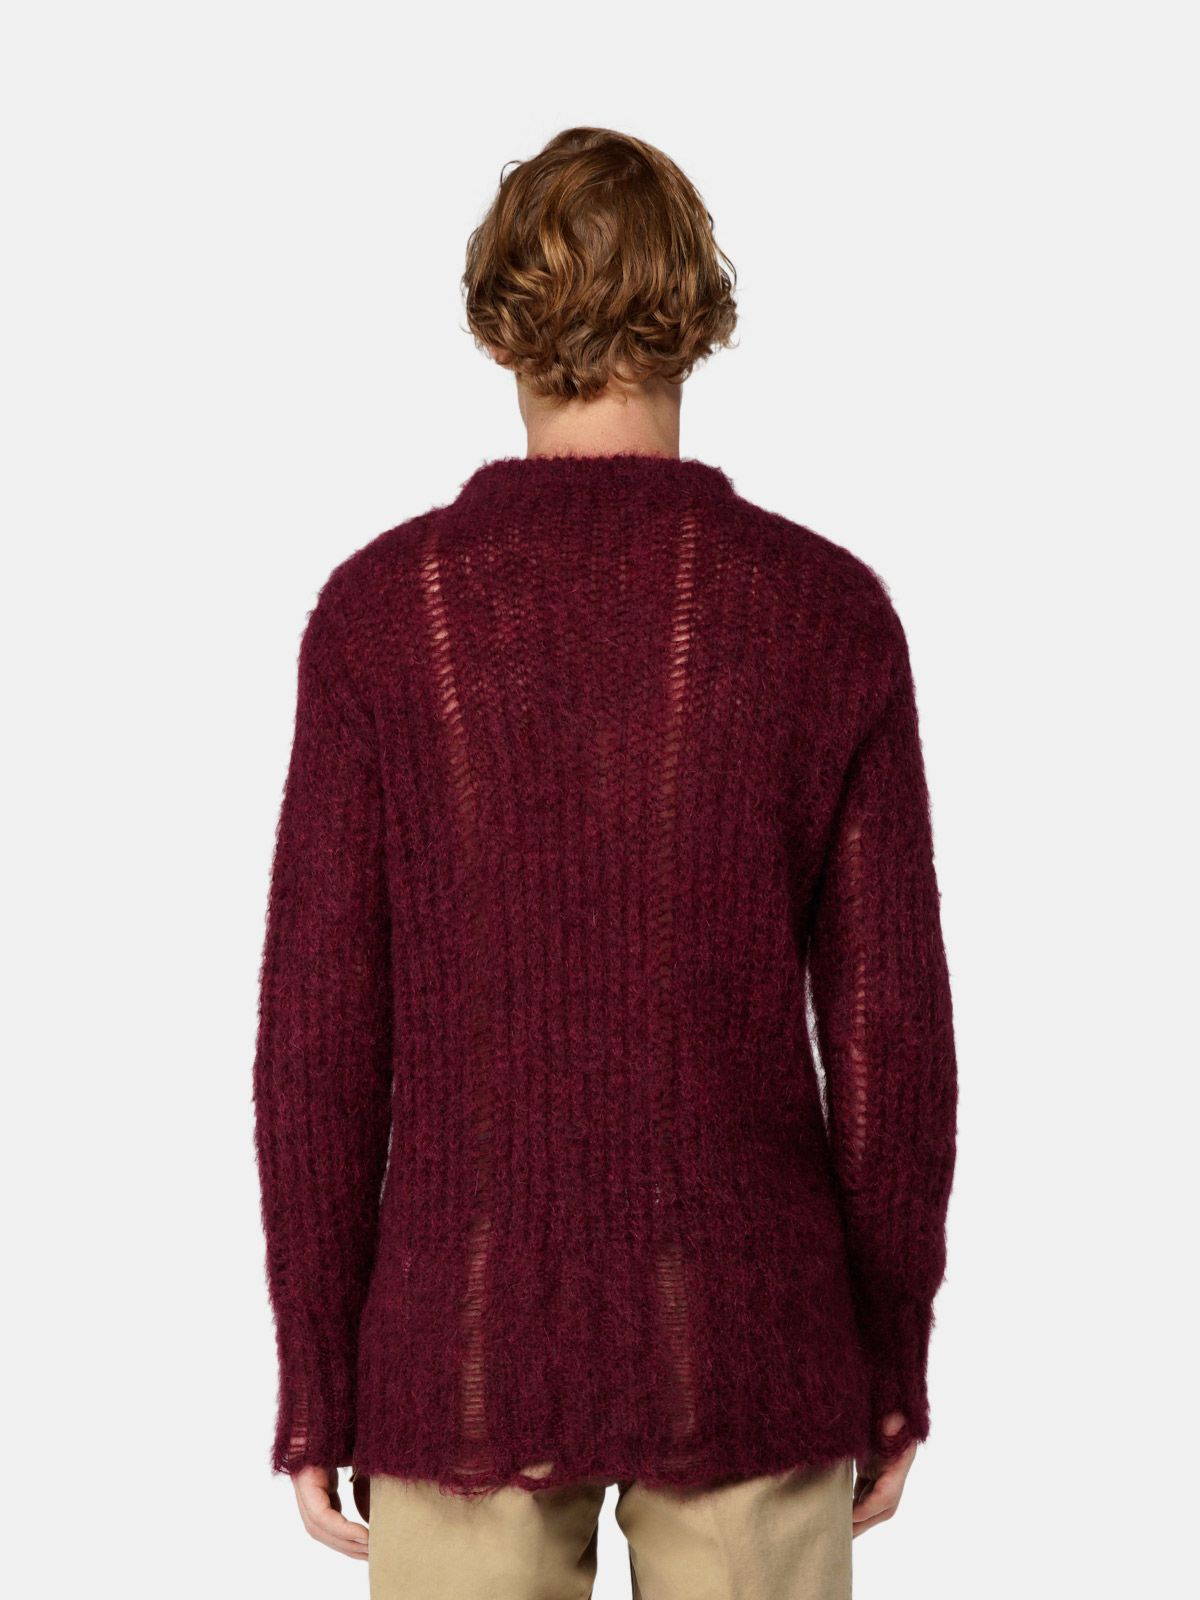 Golden Goose - Algar sweater in burgundy mohair wool in